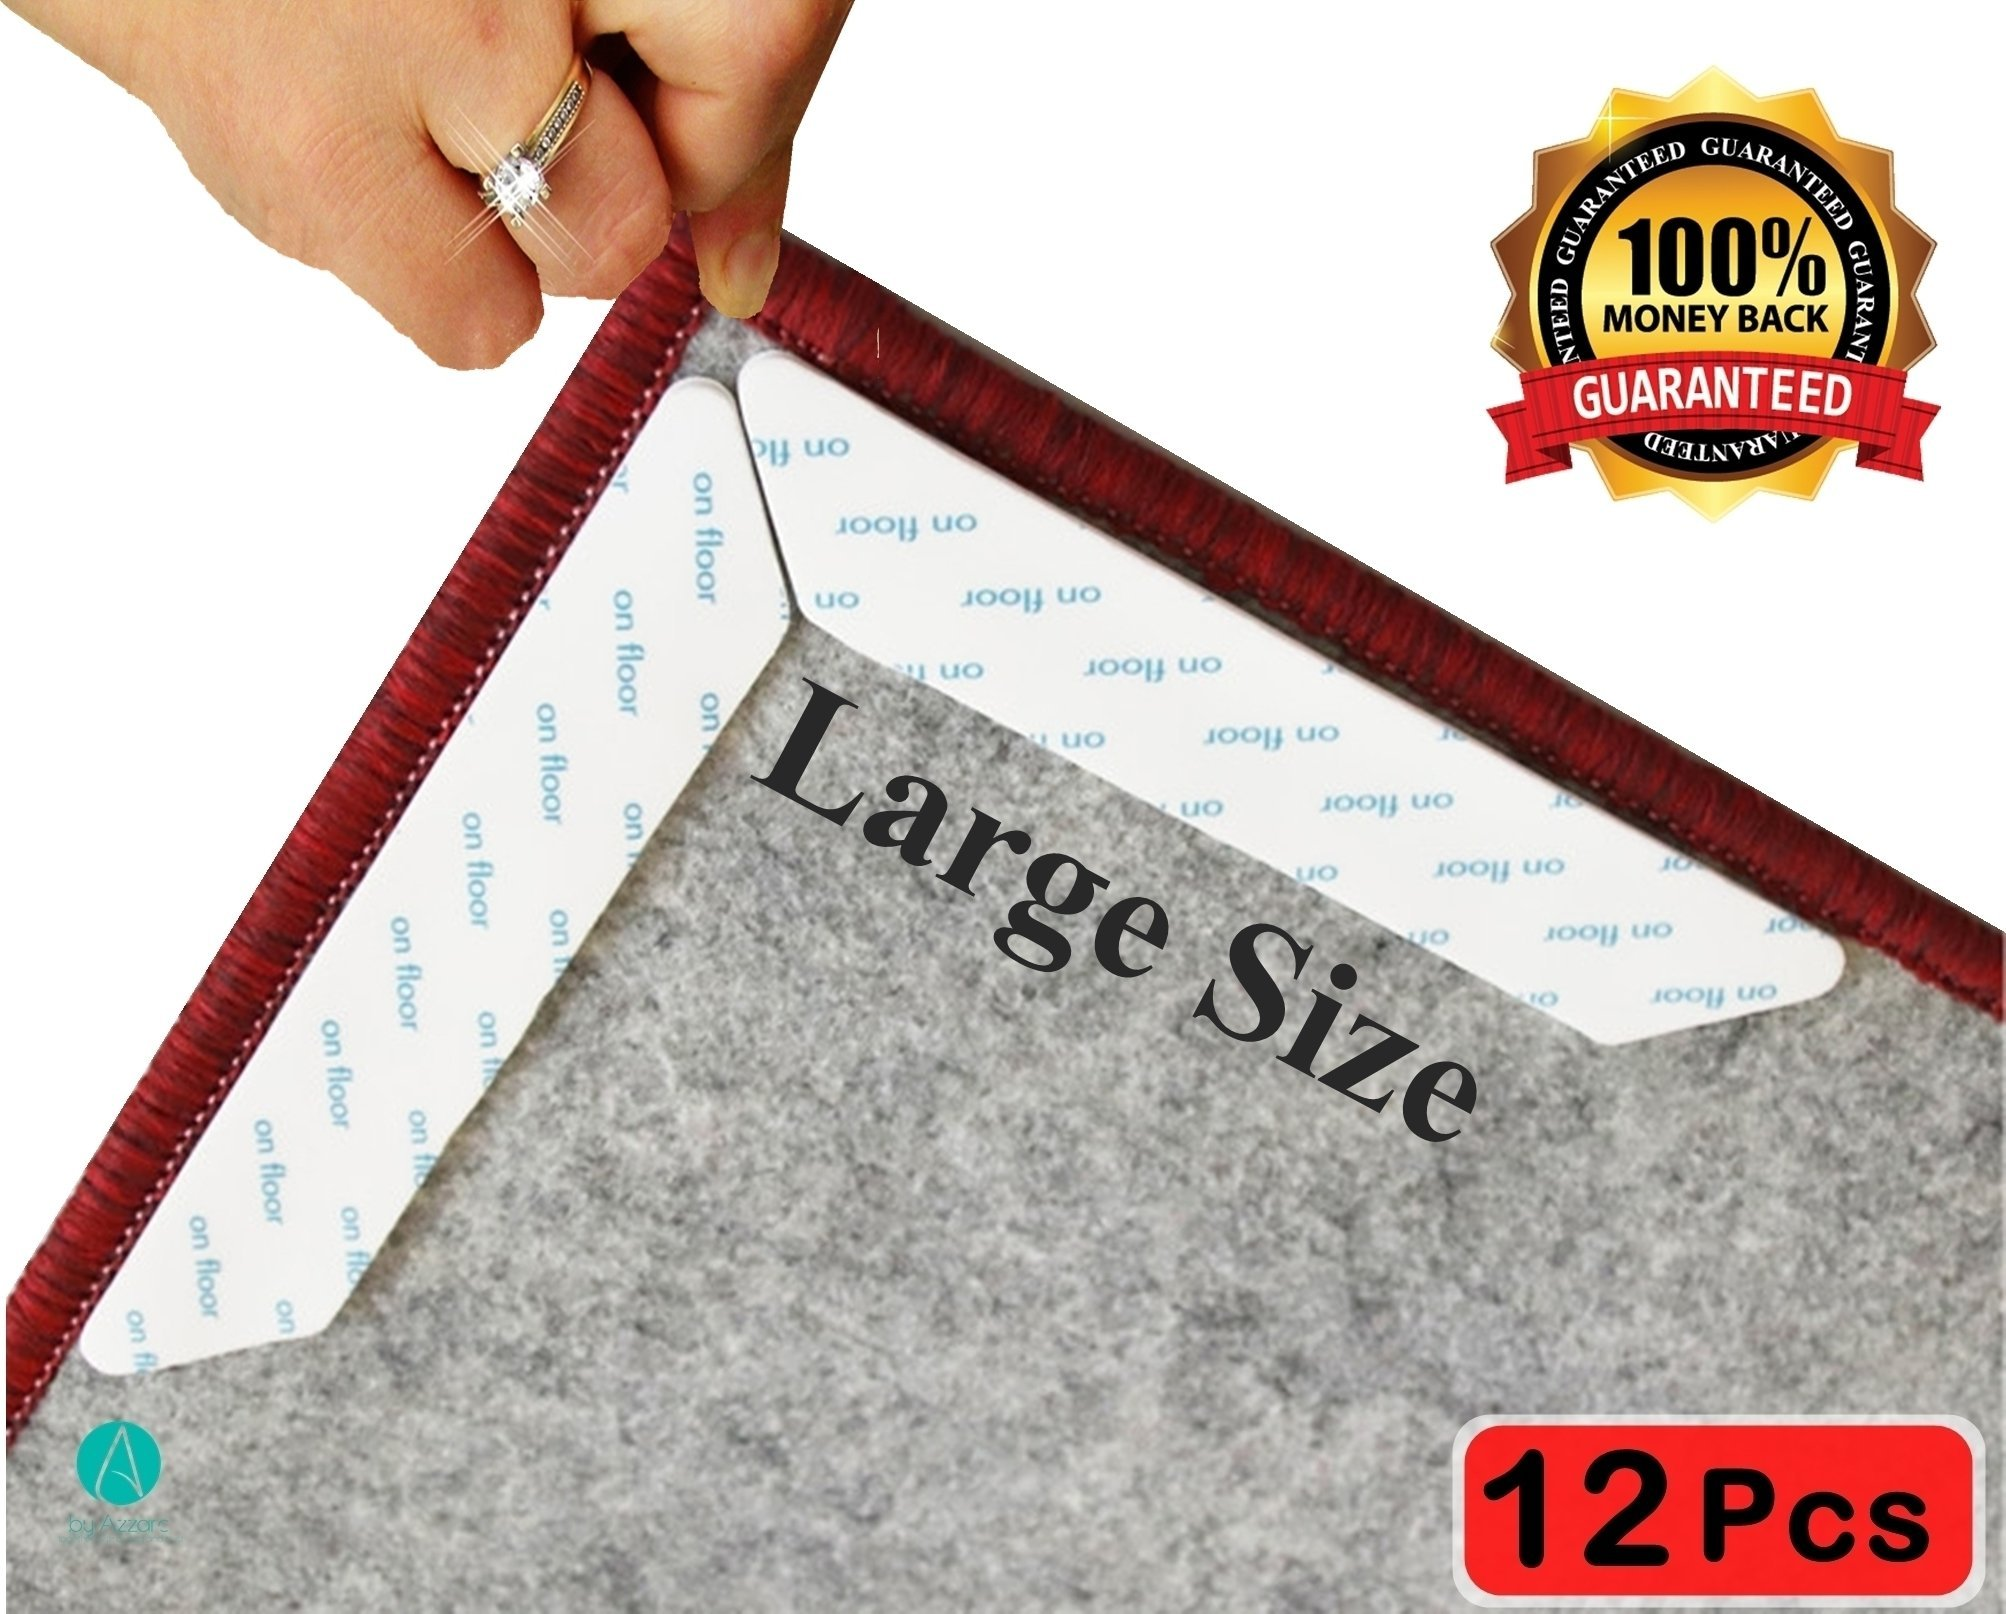 Anti Curling Rug Gripper 12 pcs.Keeps Your Rug in Place & Makes Corners Flat.Reusable,Large,White-Ideal Carpet Pad | Premium Double Sided Anti Slip Carpet Gripper.Best Rug Tape.PU Gel safe Material.